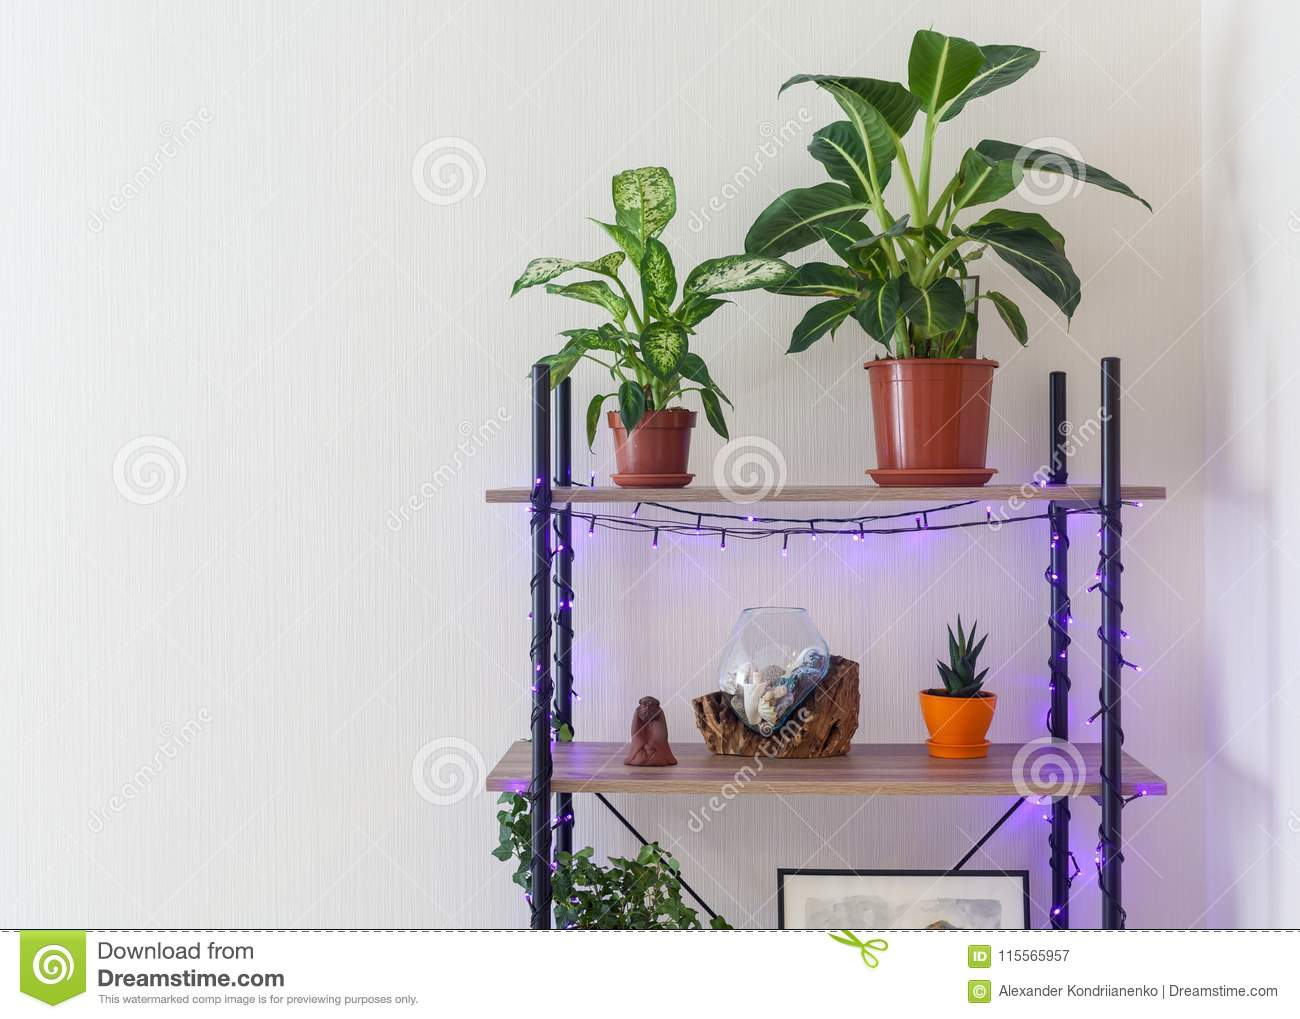 Living Room Interior Bookshelf With Flower Pots Lights And Glass Vase Behind White Wallpaper